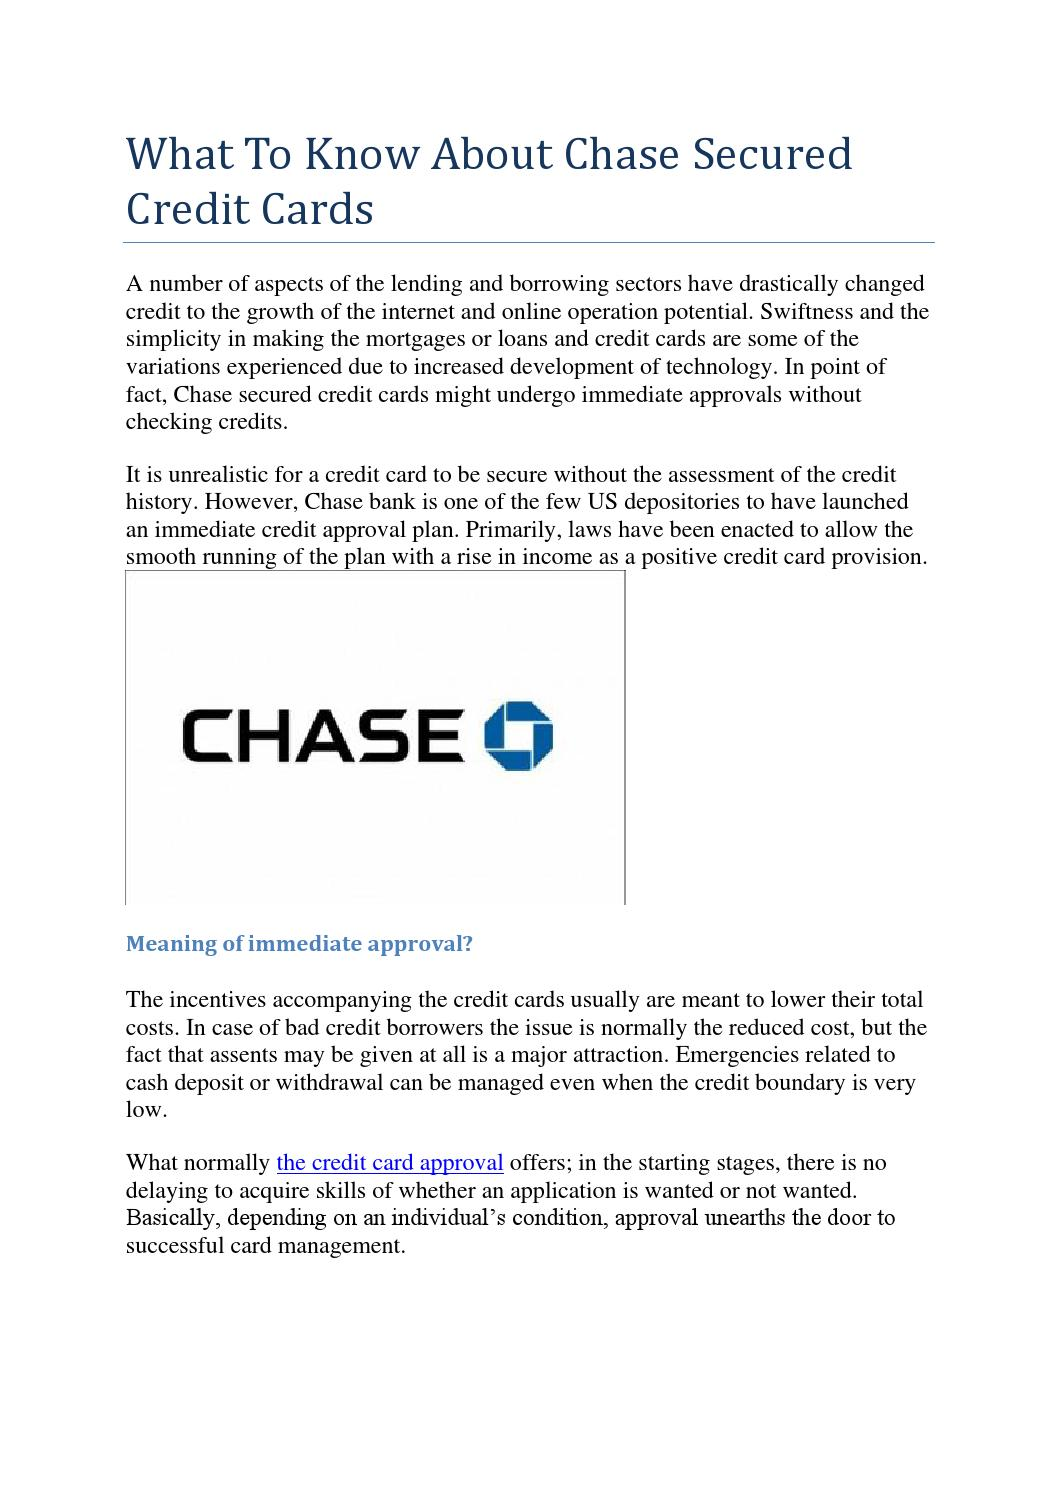 Immediate Credit Card >> What To Know About Chase Secured Credit Cards By